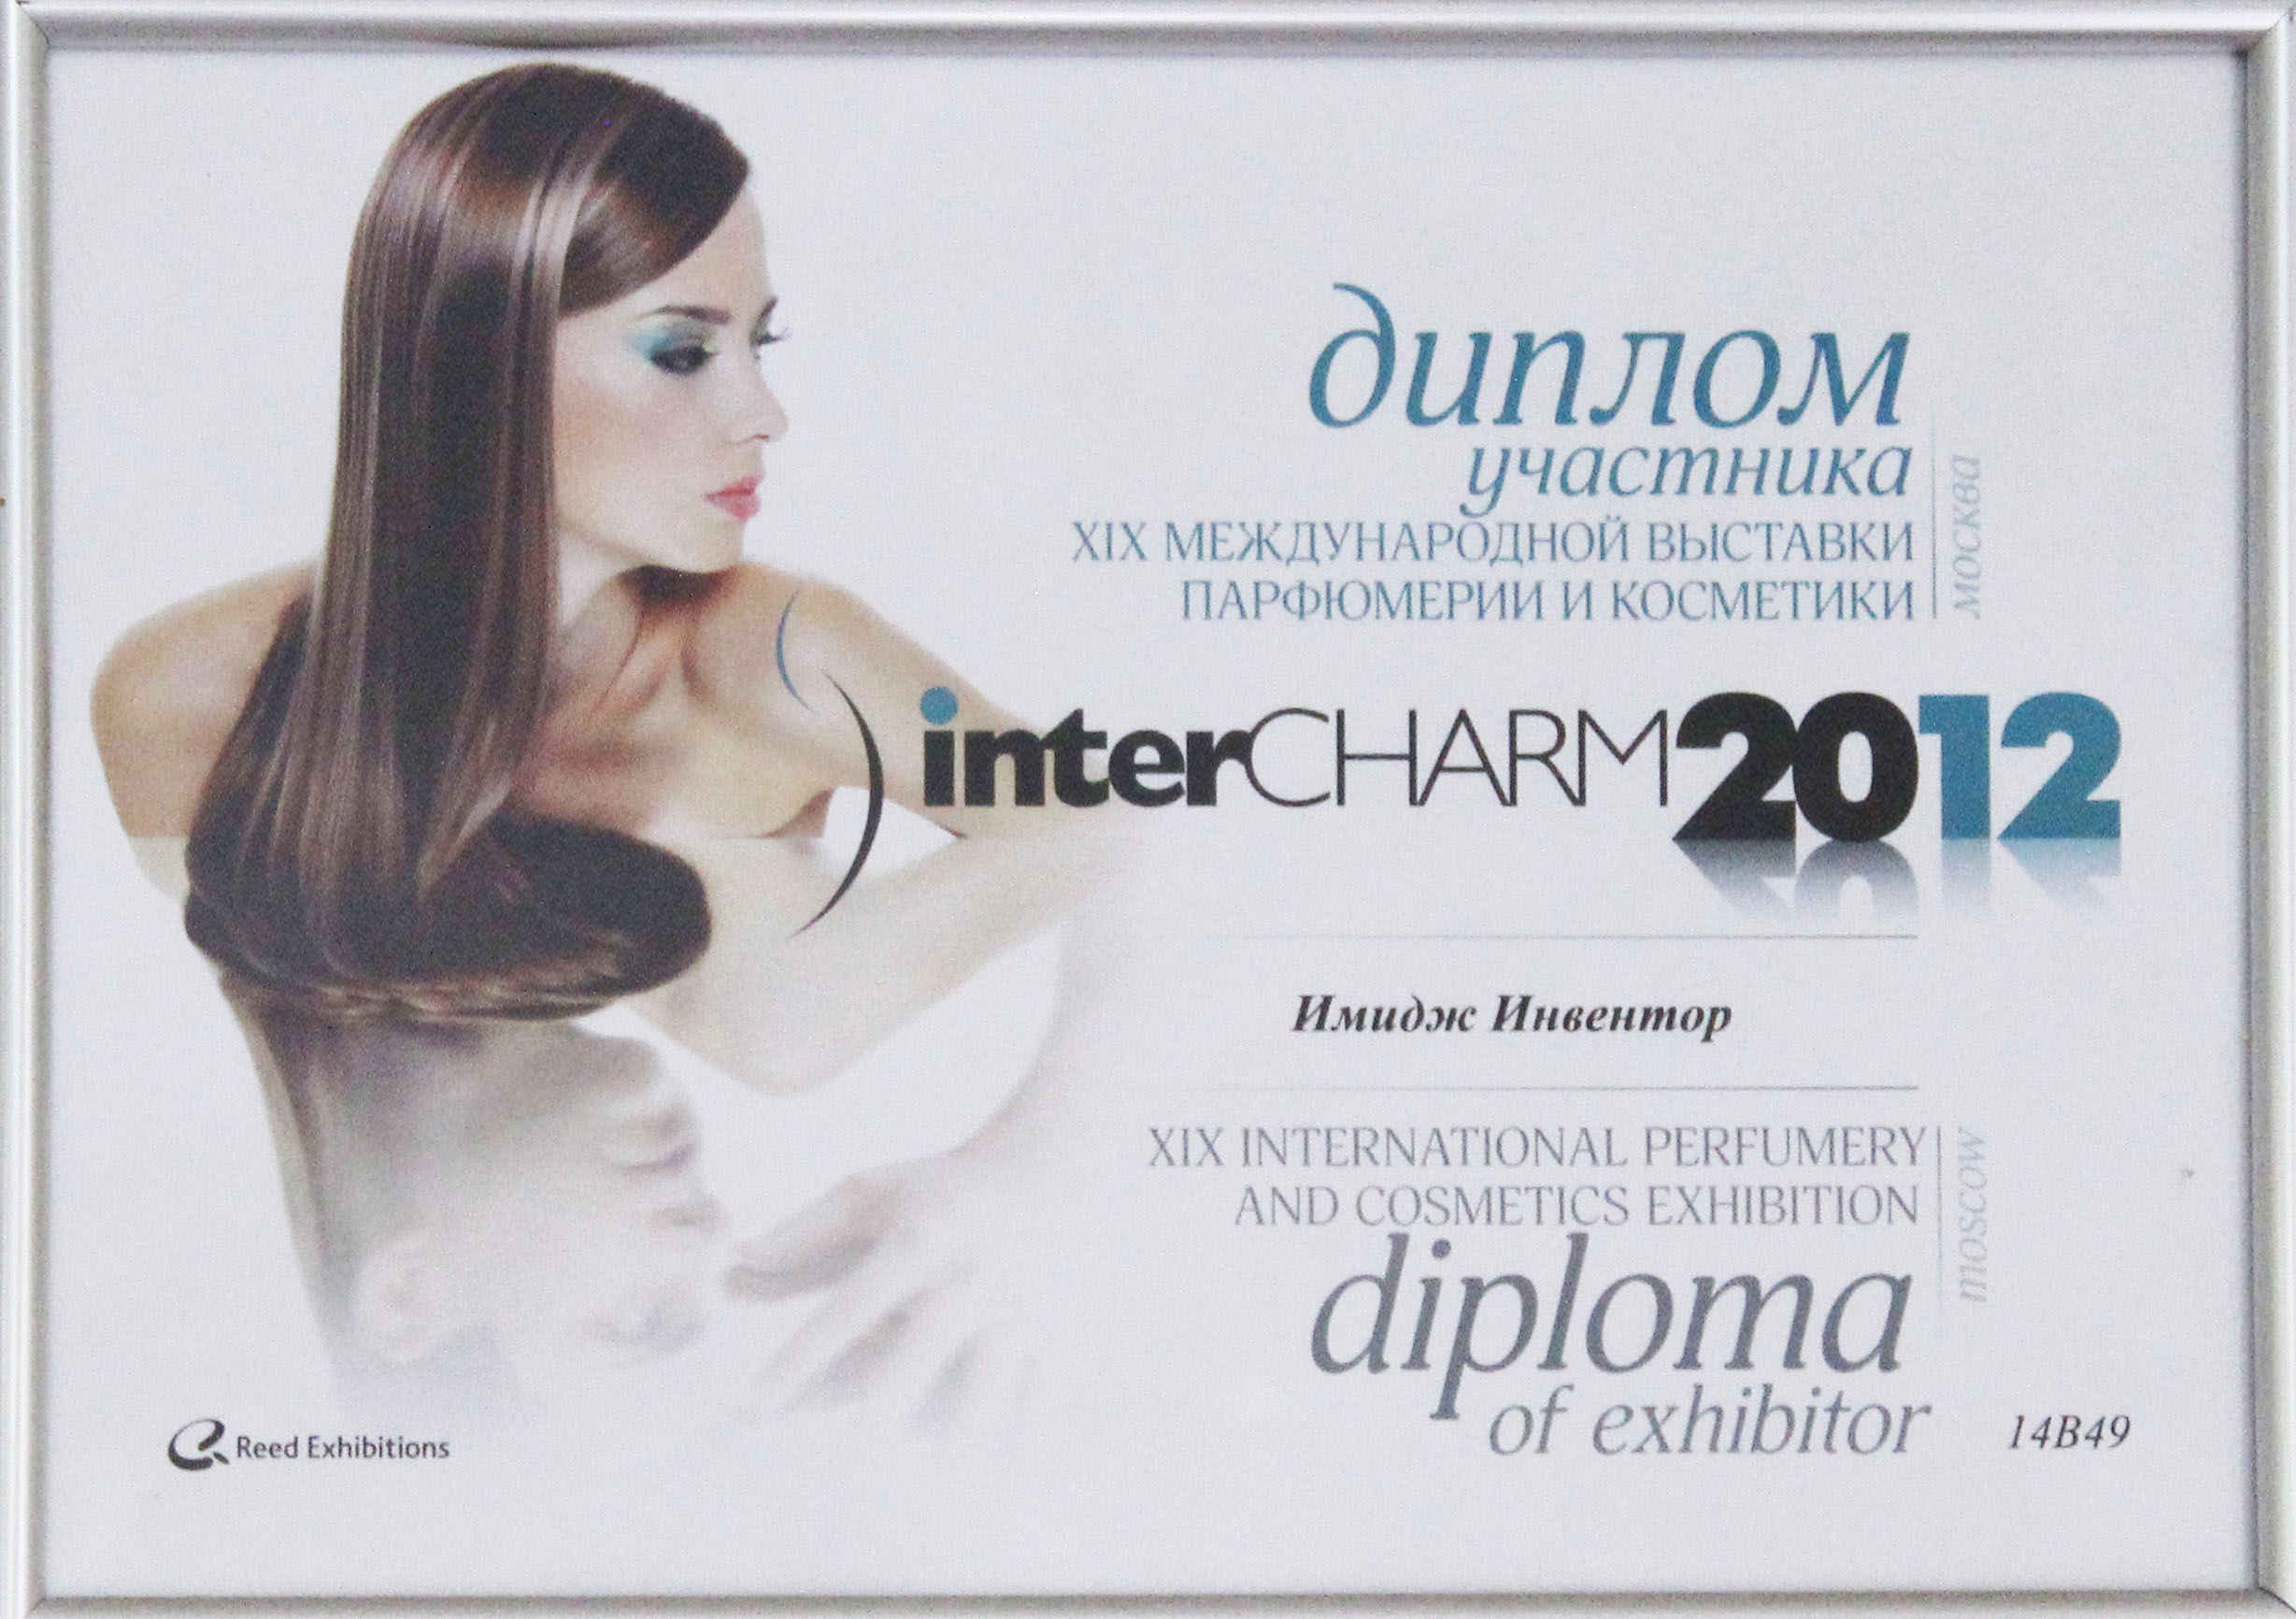 InterCharm 2012